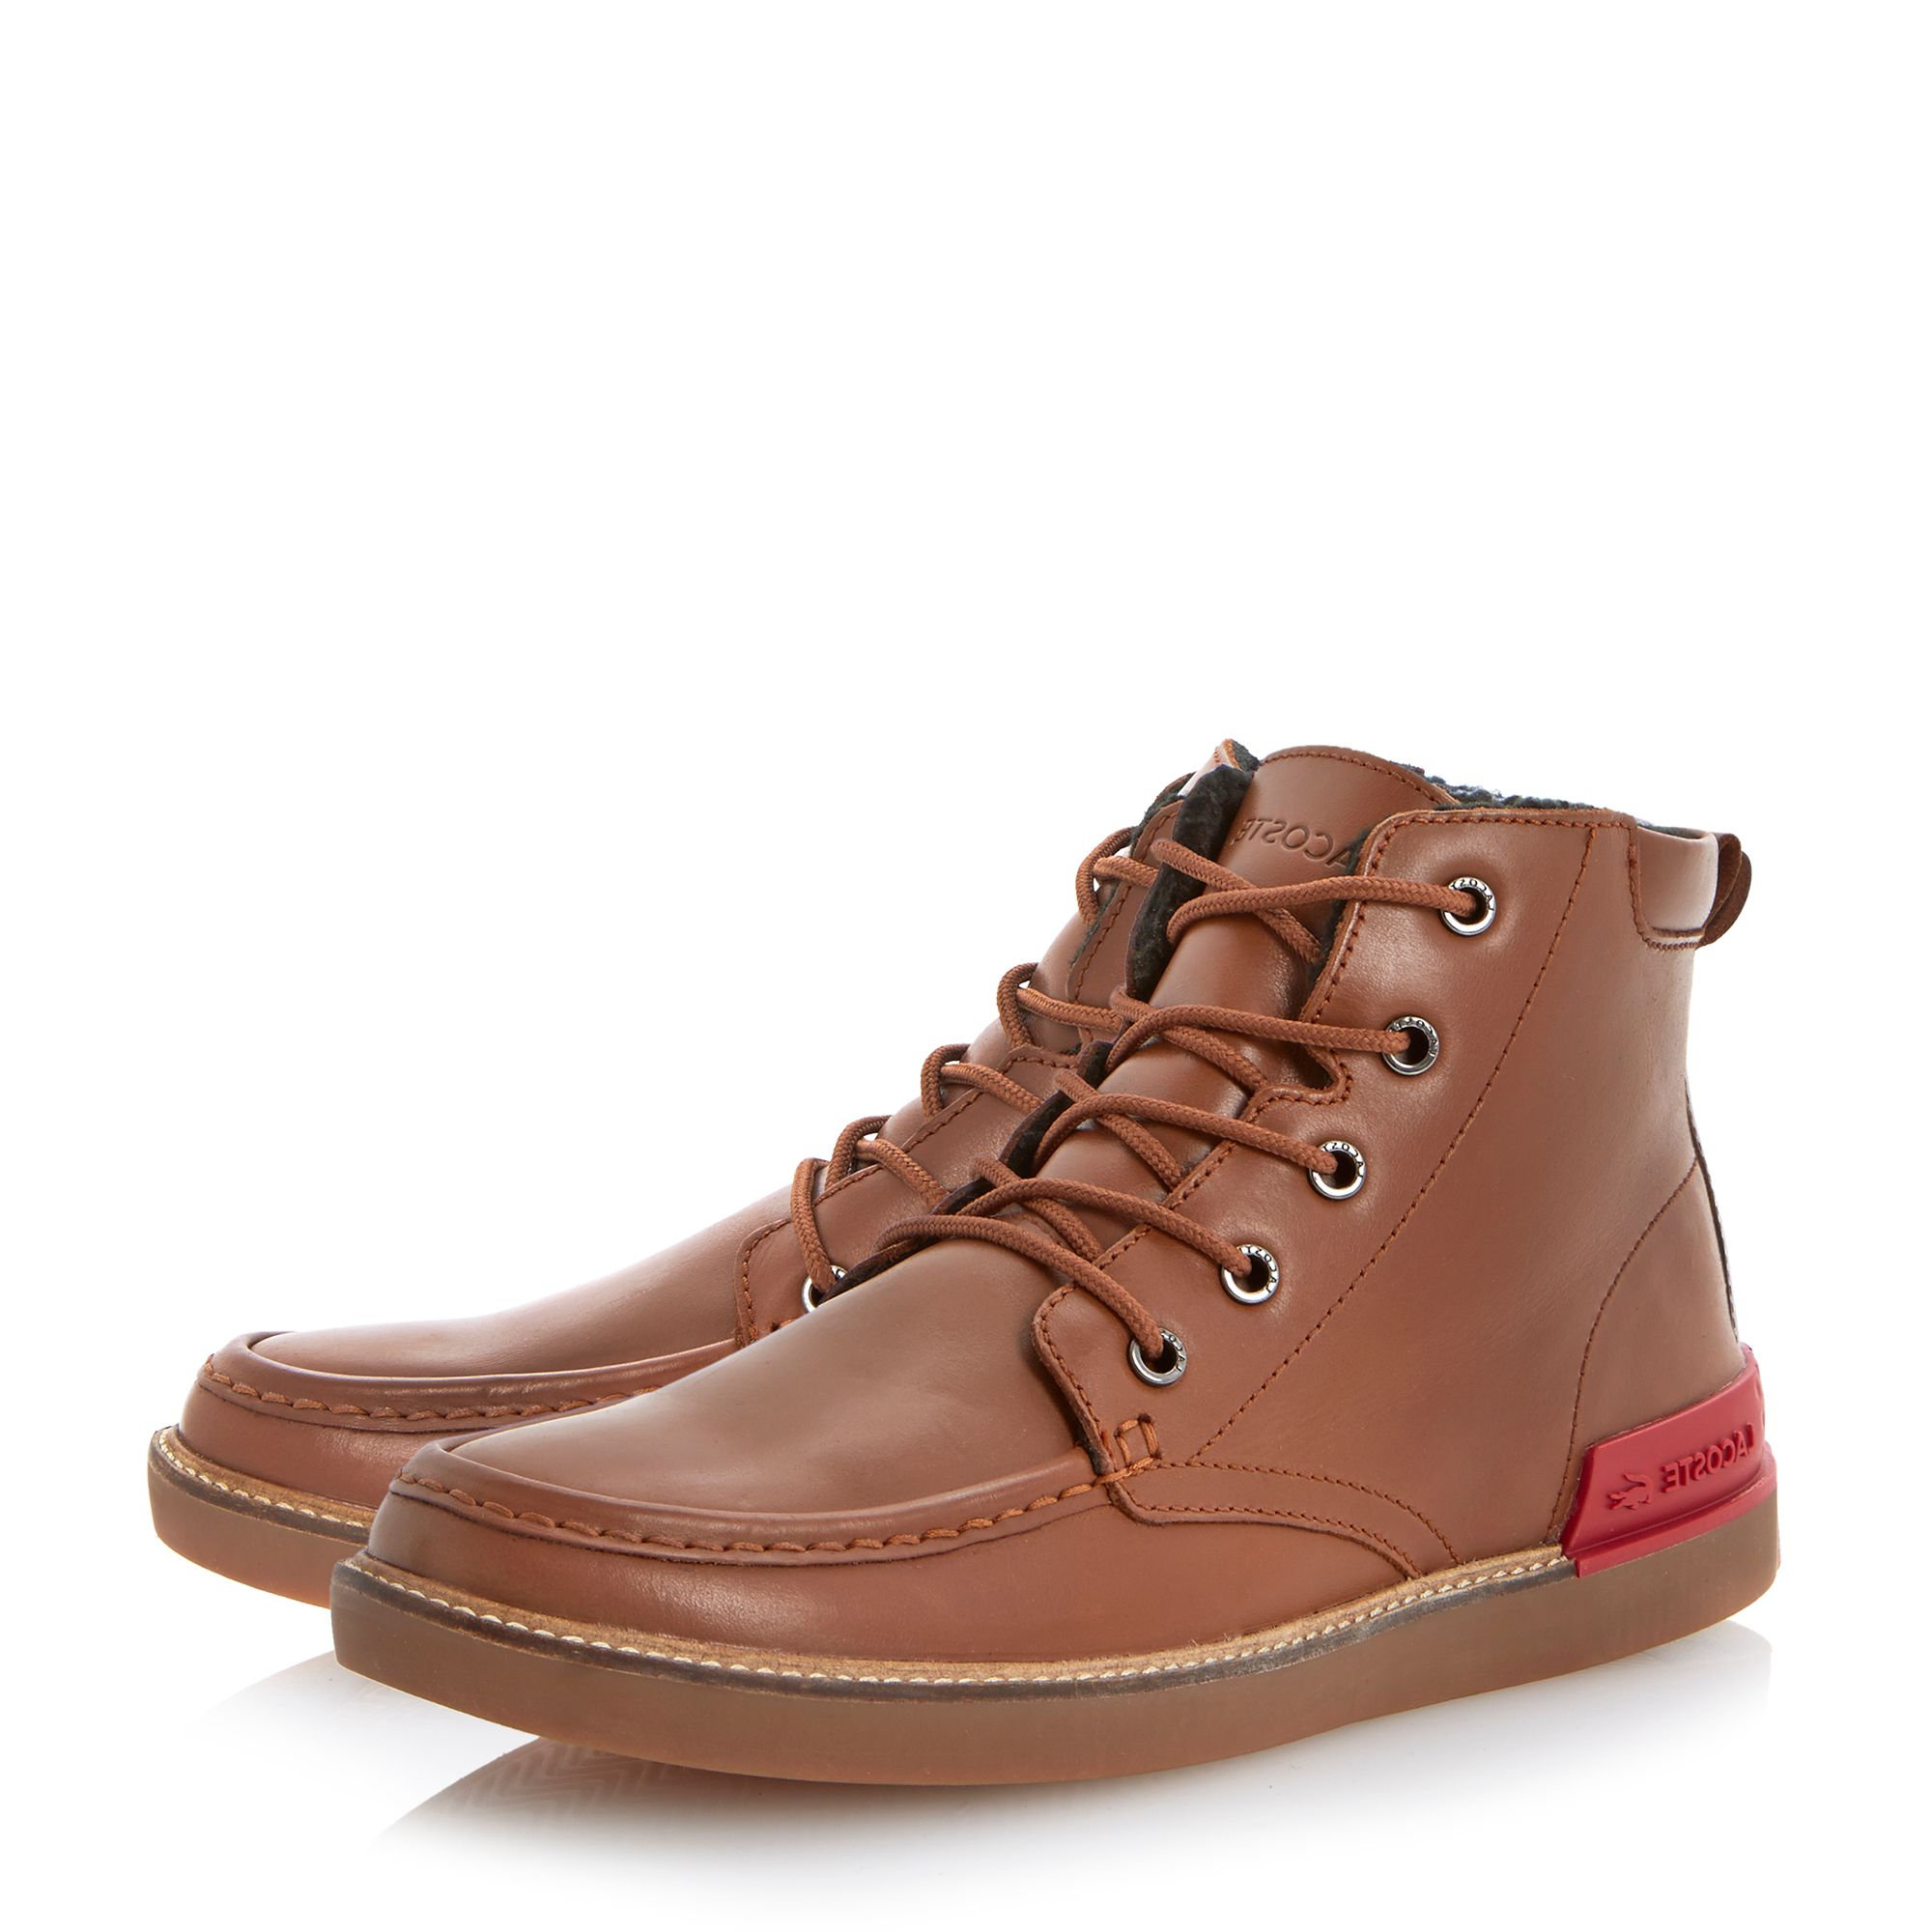 lacoste zinder lace up warm lined apron boots in brown for